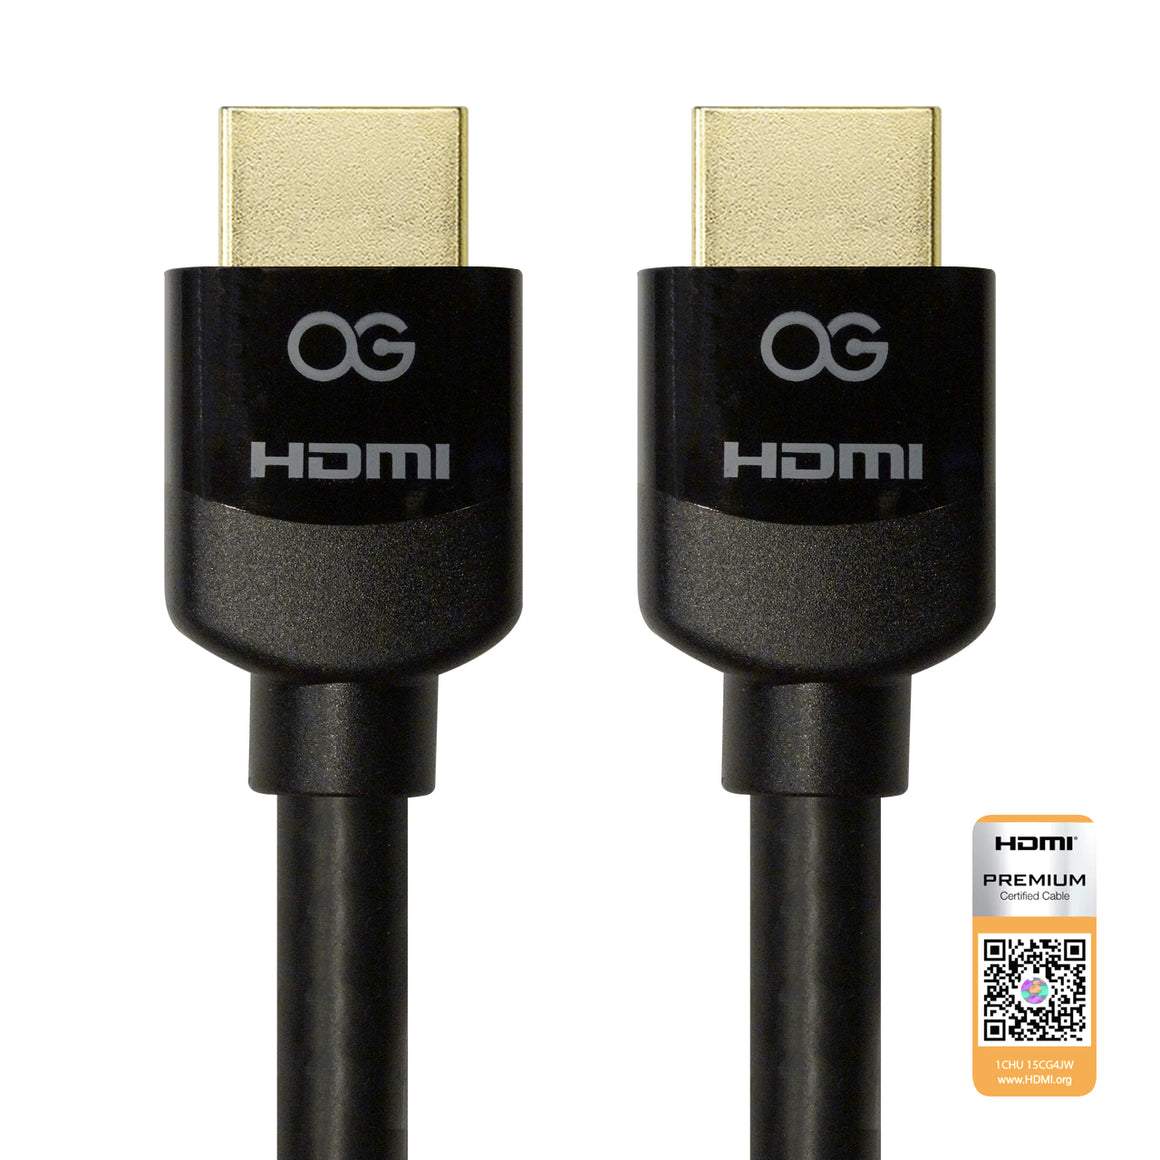 4x4 Hdmi 14 Matrix Omnigates 3d Cable 1 4 Wiring Diagram Certified Premium With Ethernet